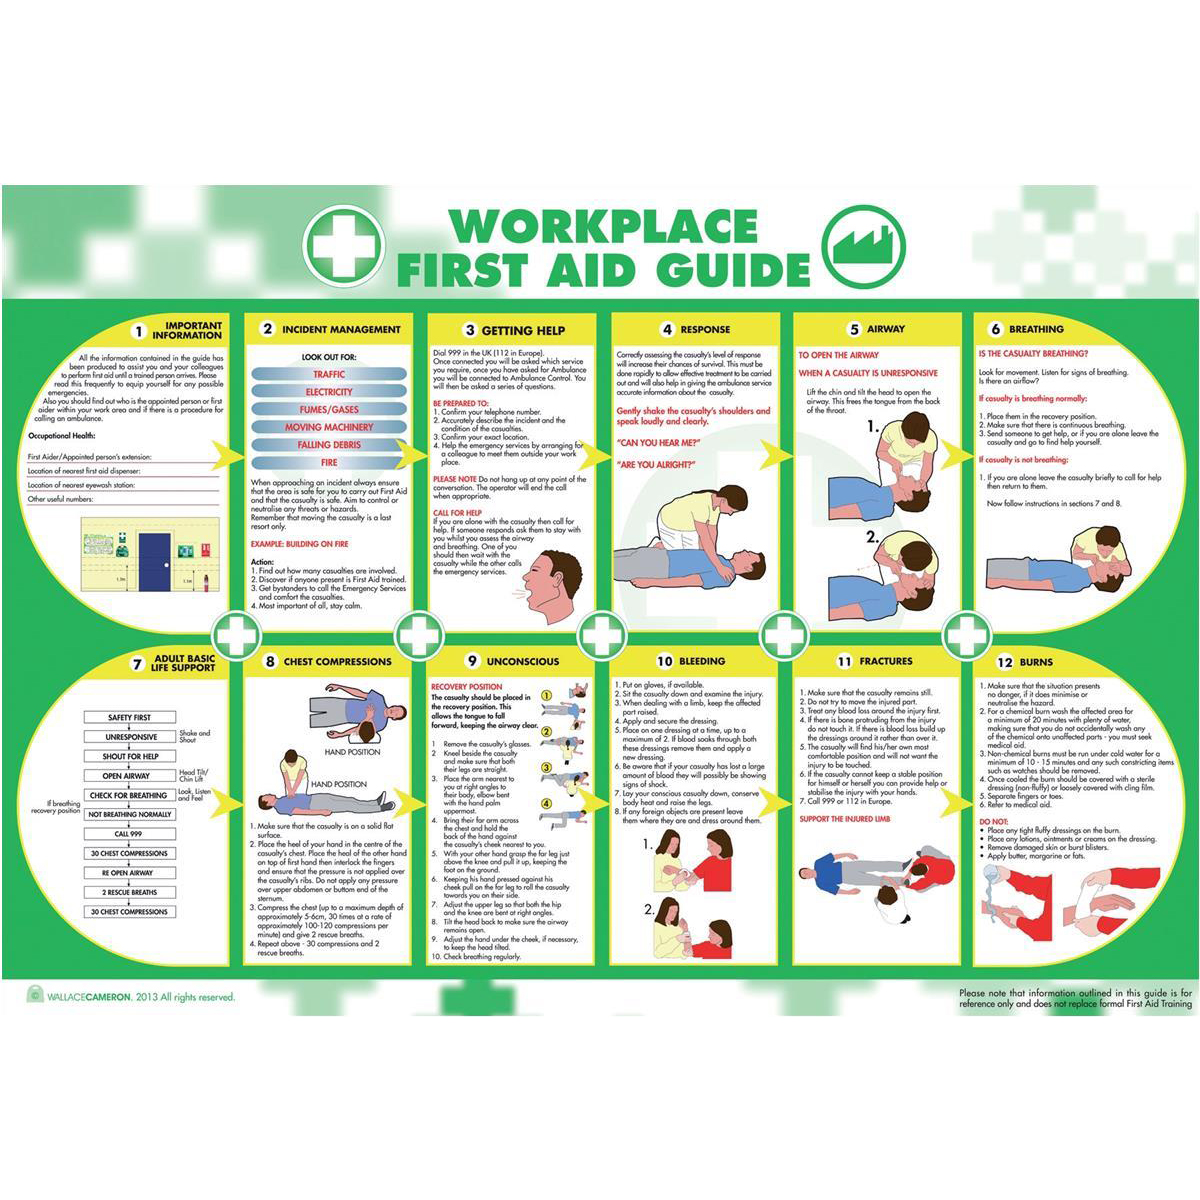 Wallace Cameron Workplace First-Aid Guide Poster Laminated Wall-mountable W840xH590mm Ref 5405025